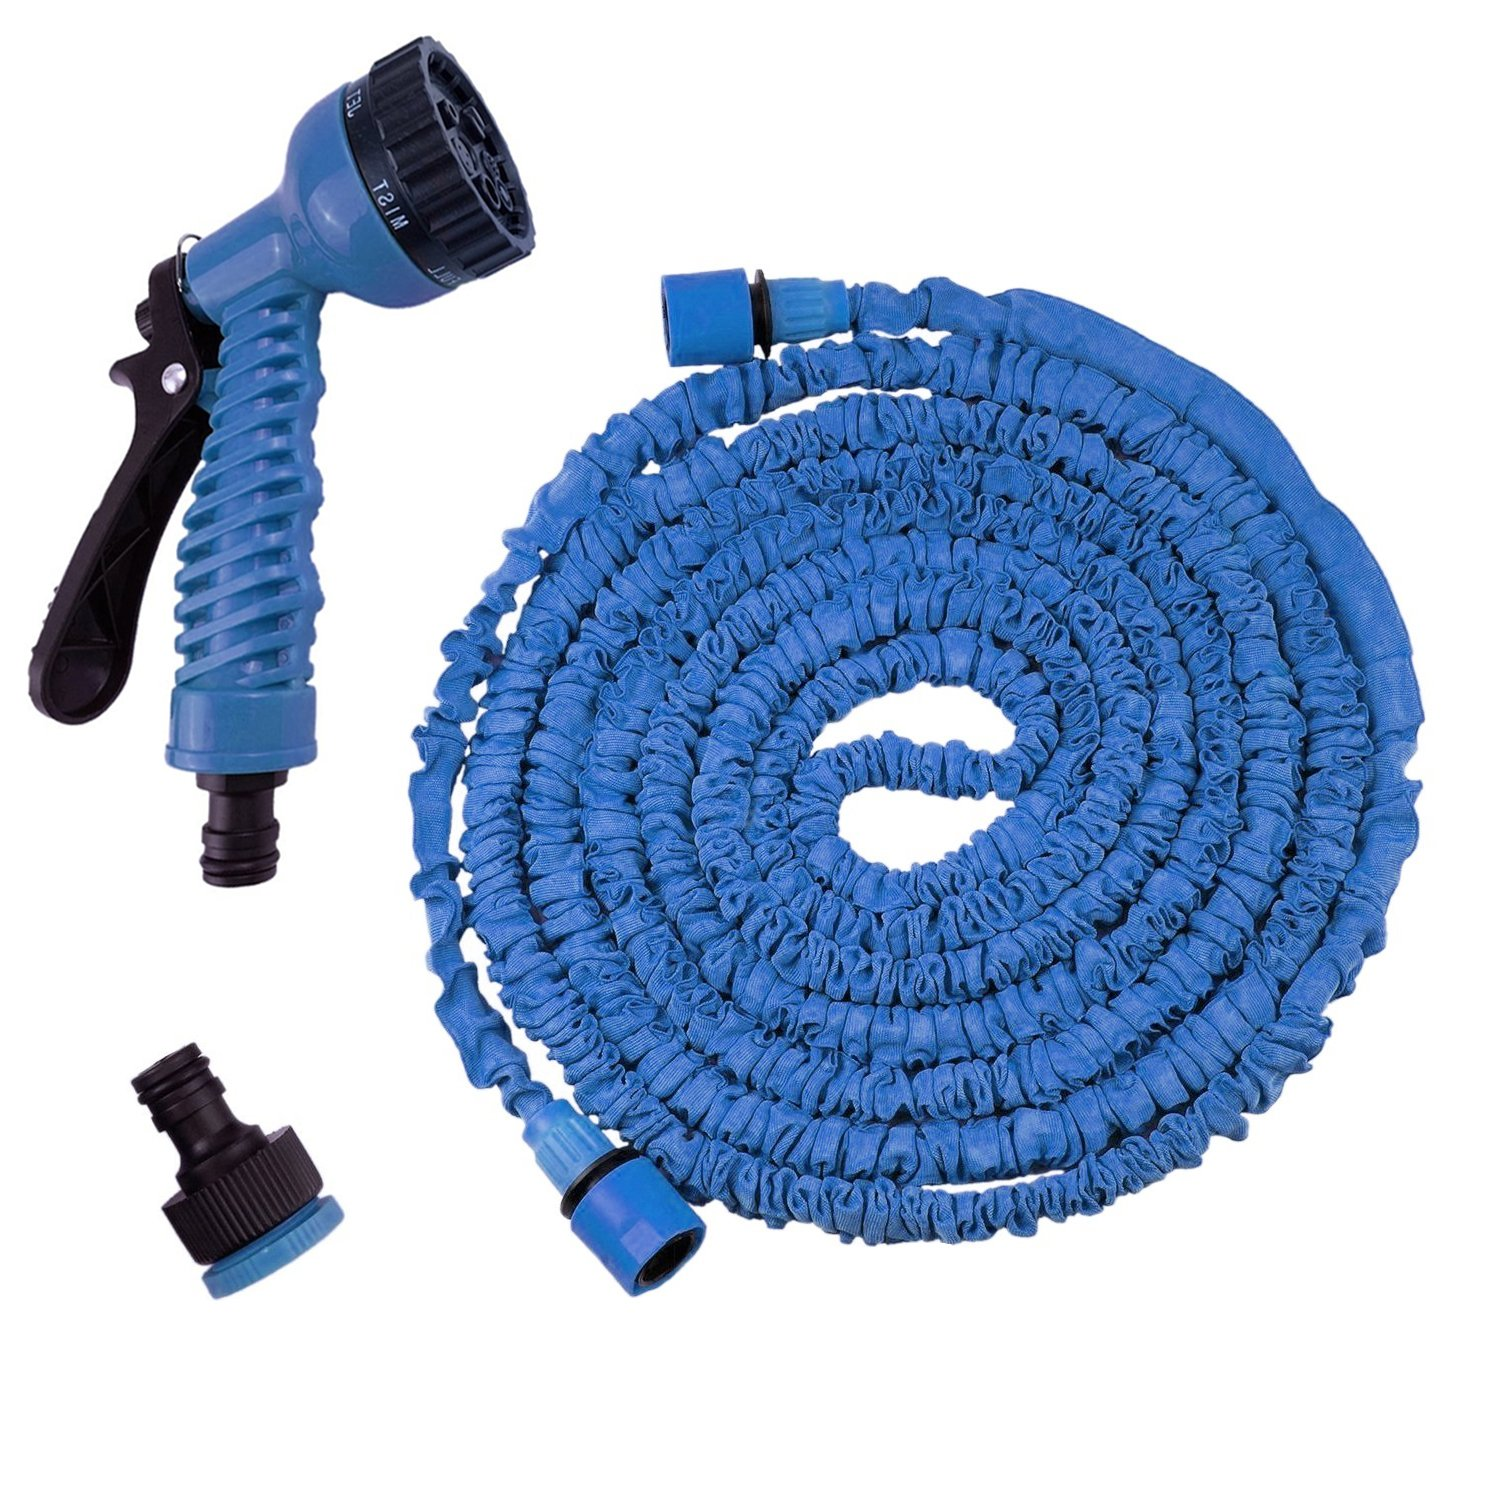 150ft Expandable Garden Hose Pipe, Anti-leakage Double Layer Expanding Hose Pipe, 600D Polyester Webbing with a 8-Pattern Spray Gun for Gardening, Watering Flowers, Washing Car, Cleaning ChunKang